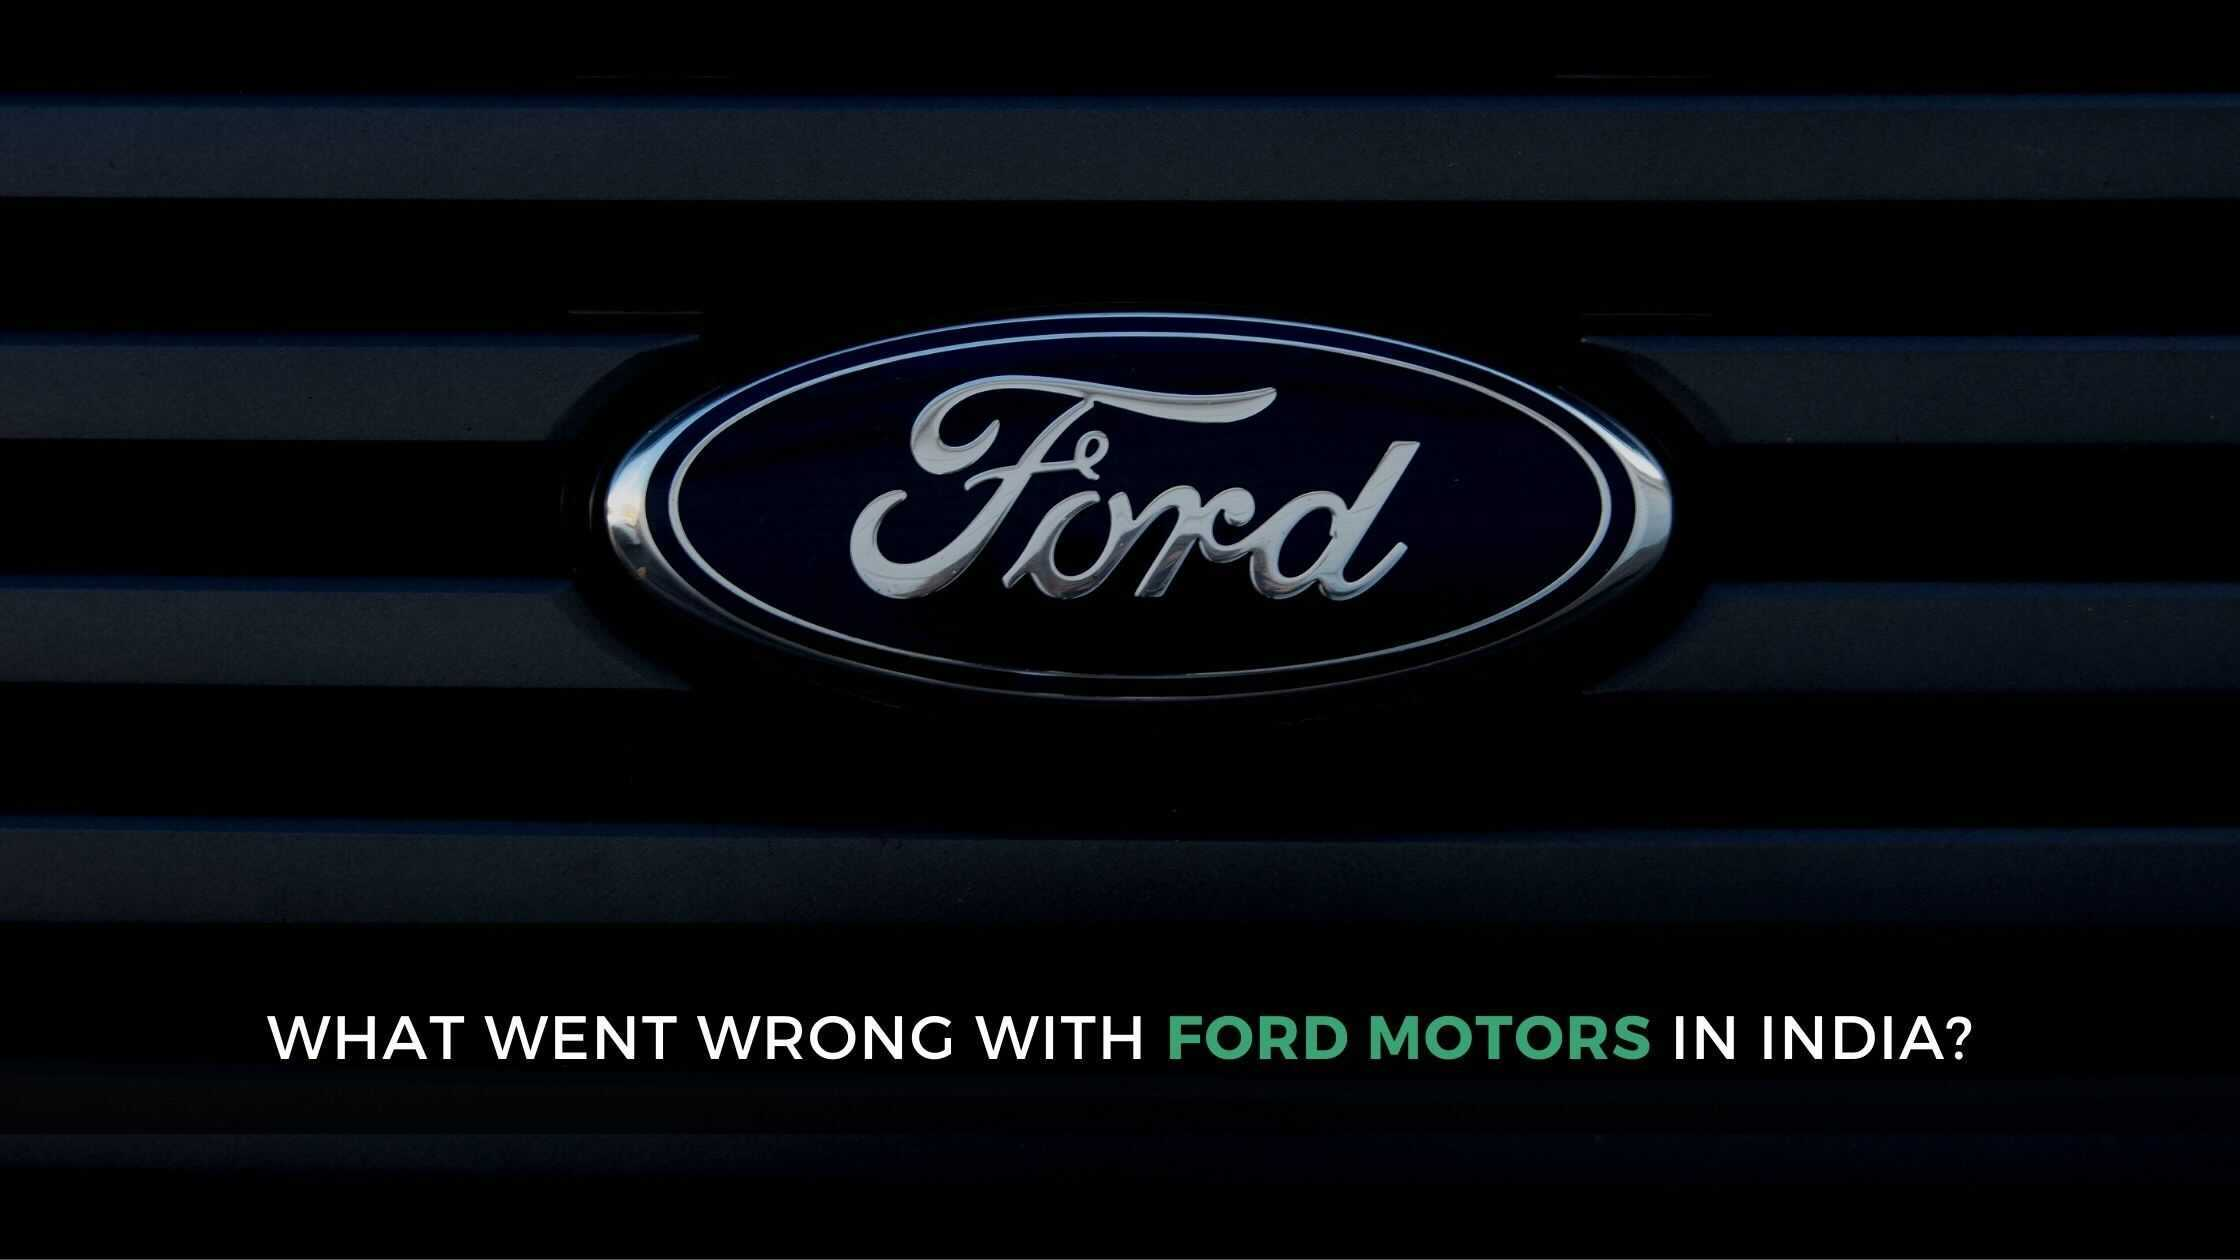 ford motor company news in India